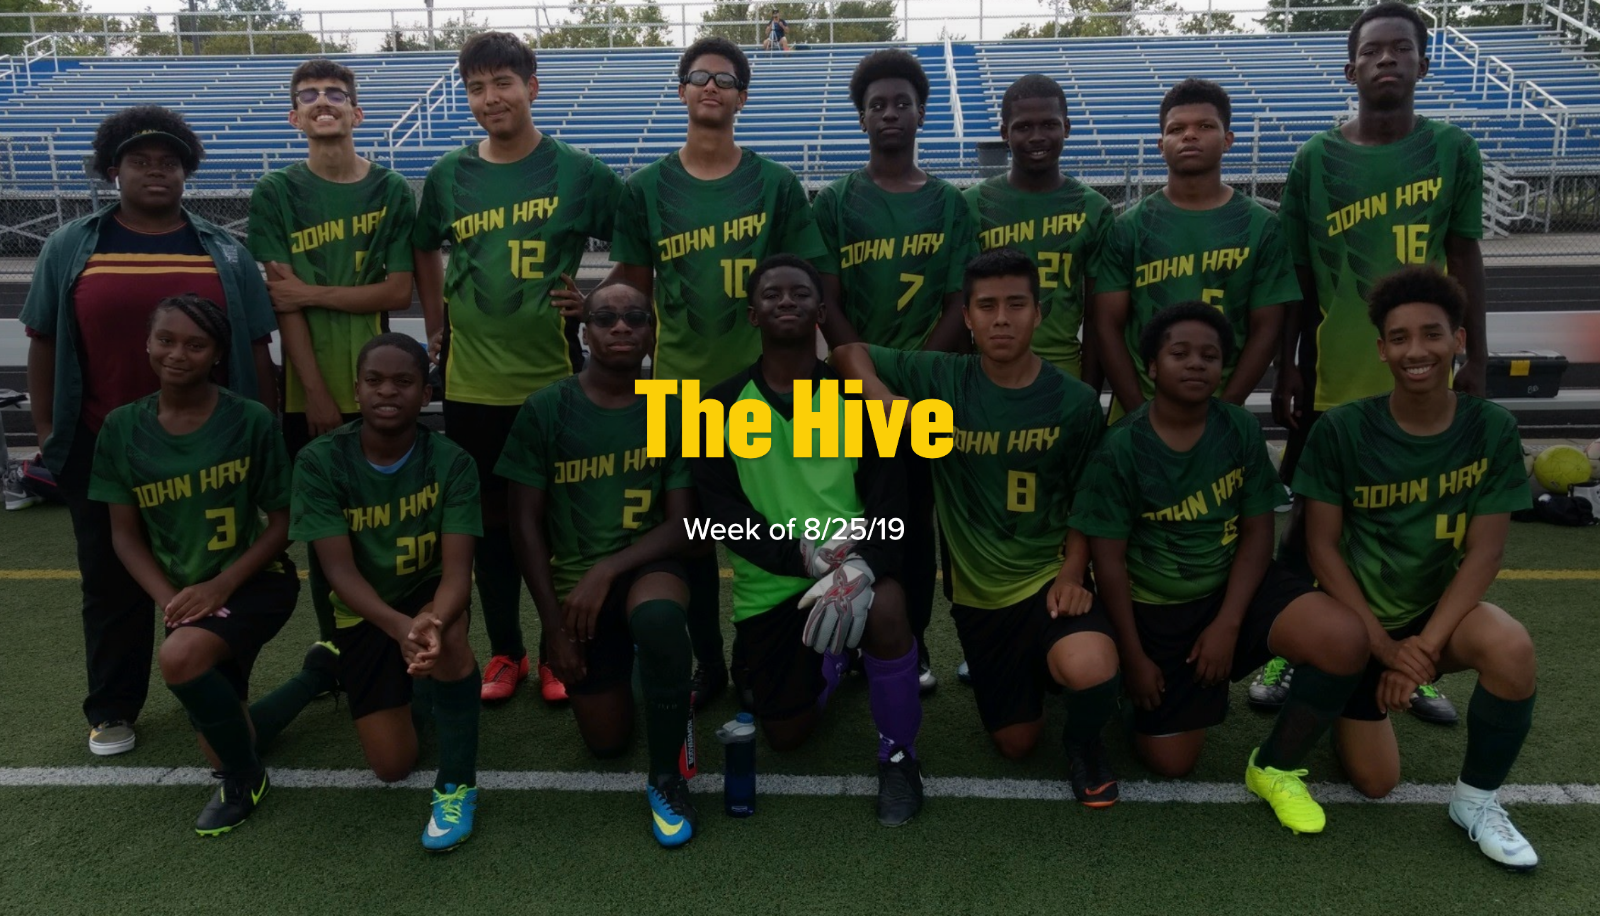 """""""The Hive"""" – The John Hay Weekly Newsletter"""